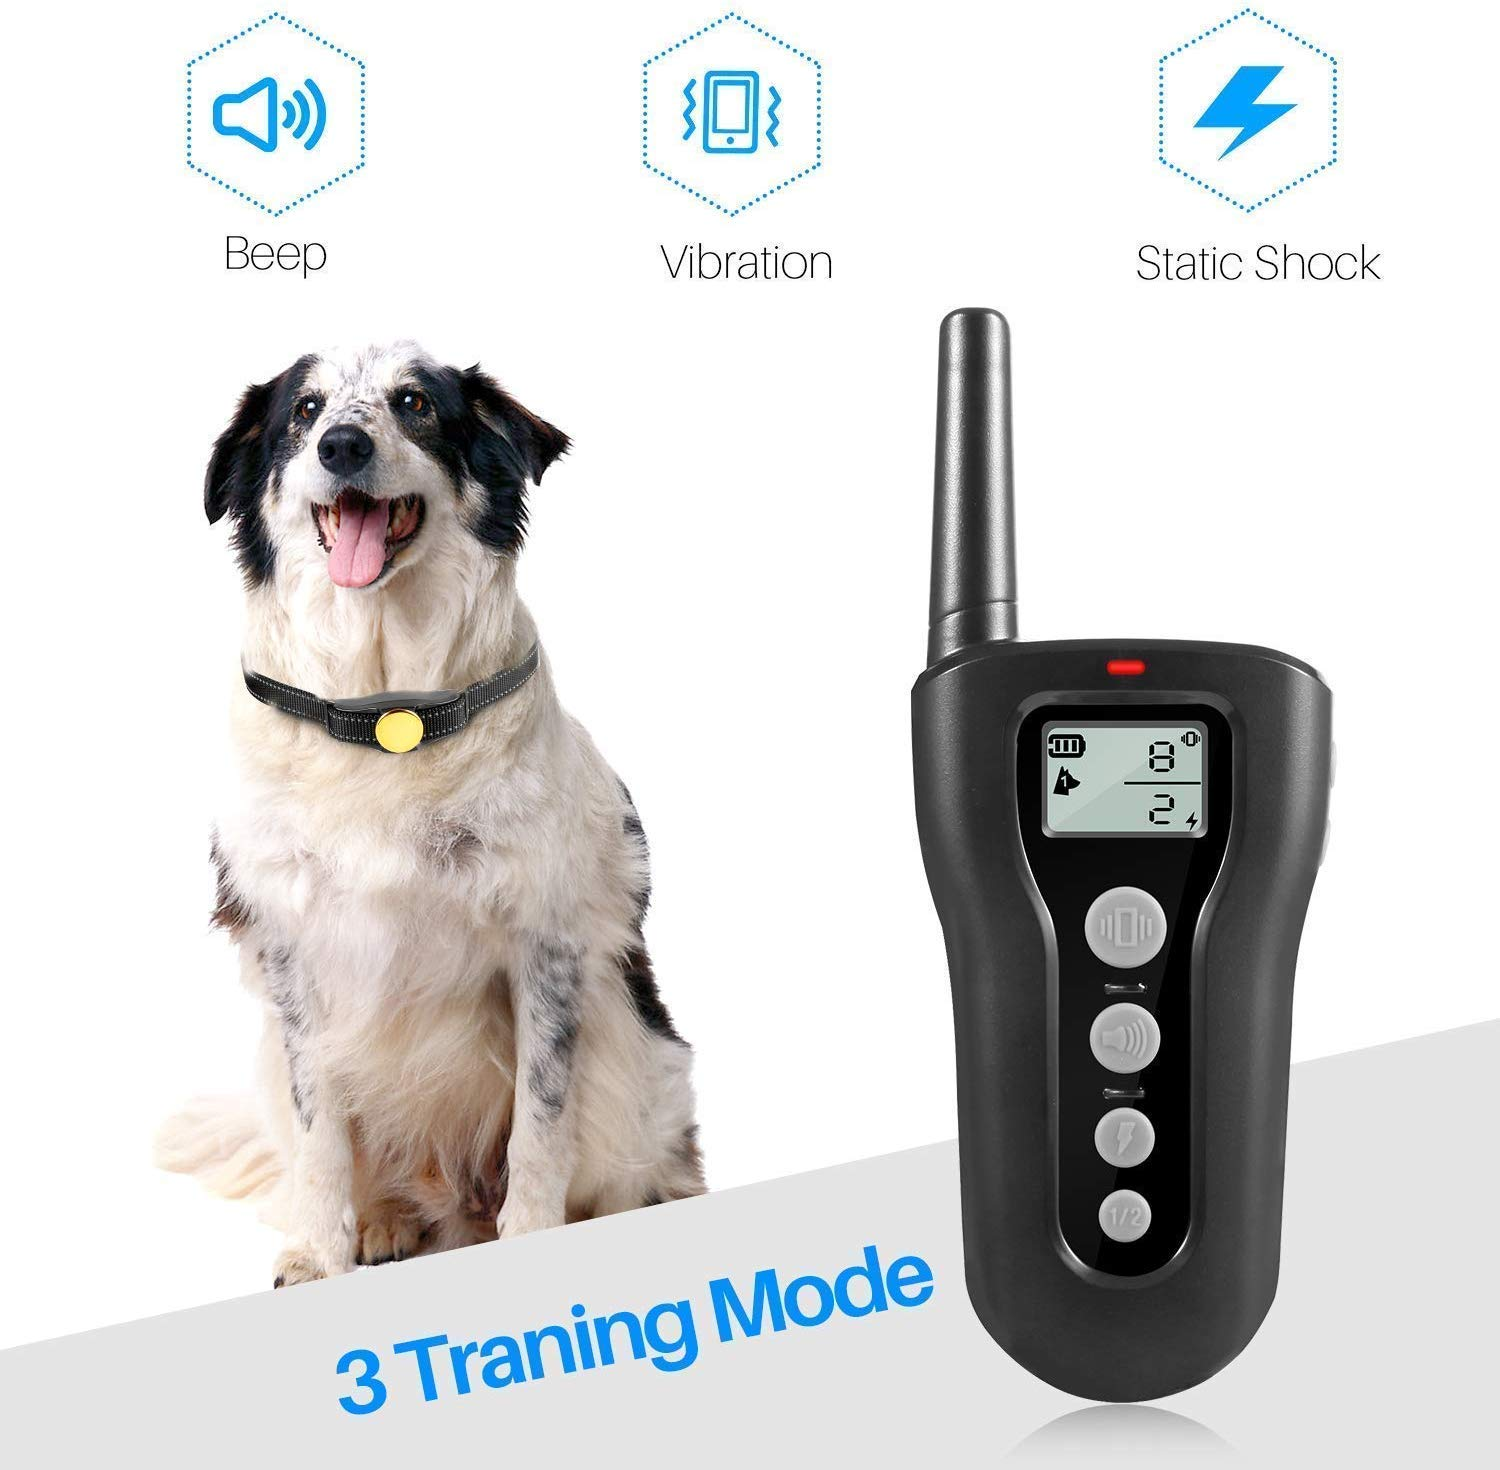 PATPET Dog Shock Collar with Remote – 1000ft Range Shock Collar for Dogs IPX7 Waterproof No Harm Dog Training Collar Fast Training Effect for Small Medium Large Dogs